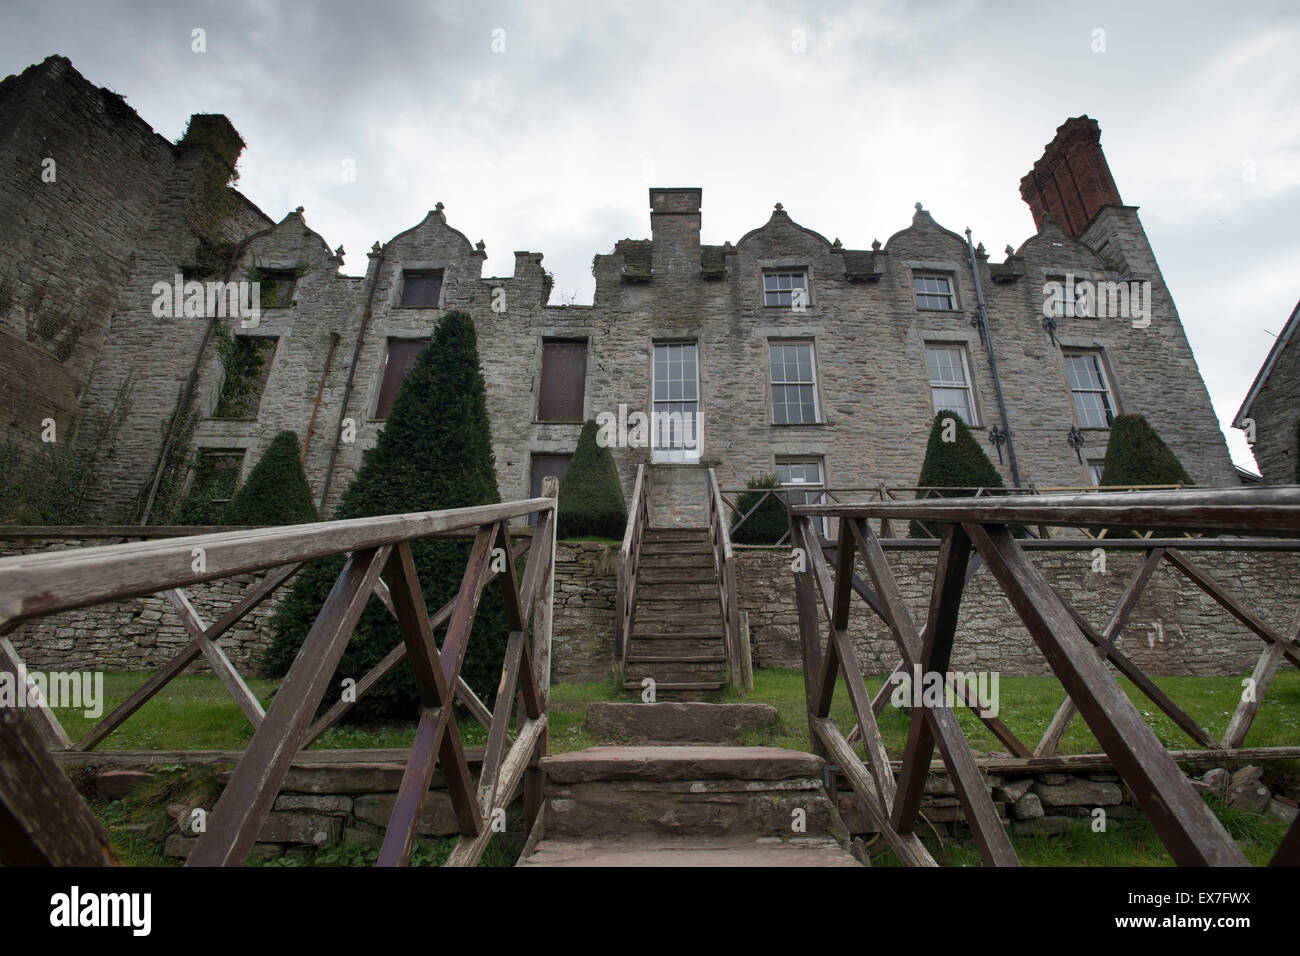 Hay Castle in Hay-on-Wye, mid Wales. - Stock Image